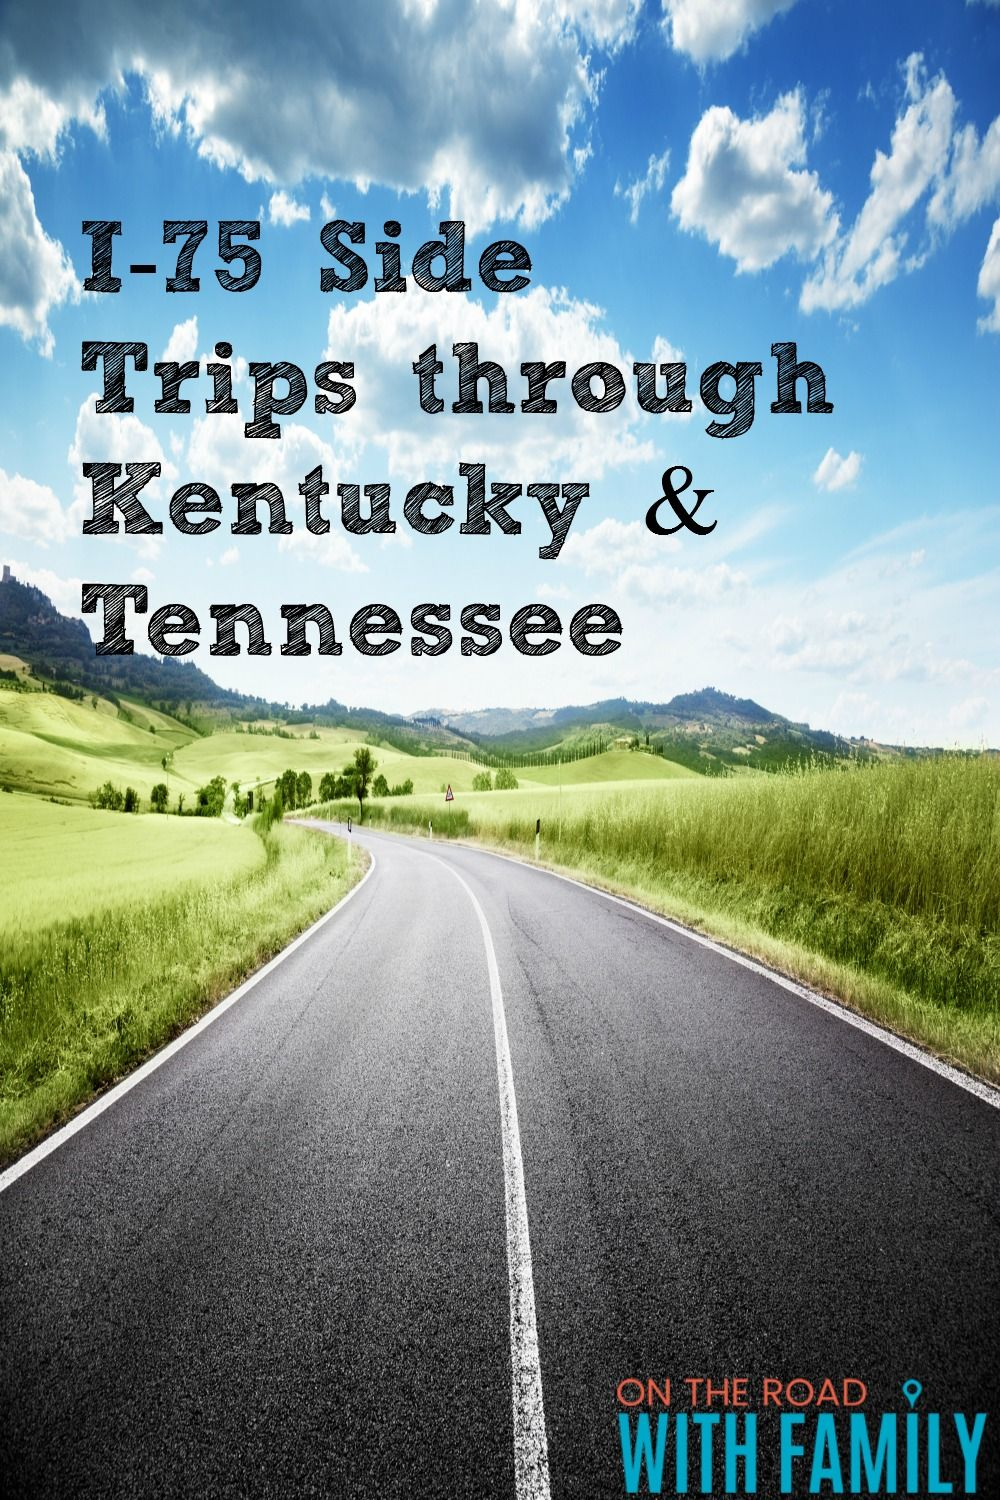 I 75 side trips through kentucky and tennessee for family travel i 75 side trips through kentucky and tennessee publicscrutiny Choice Image